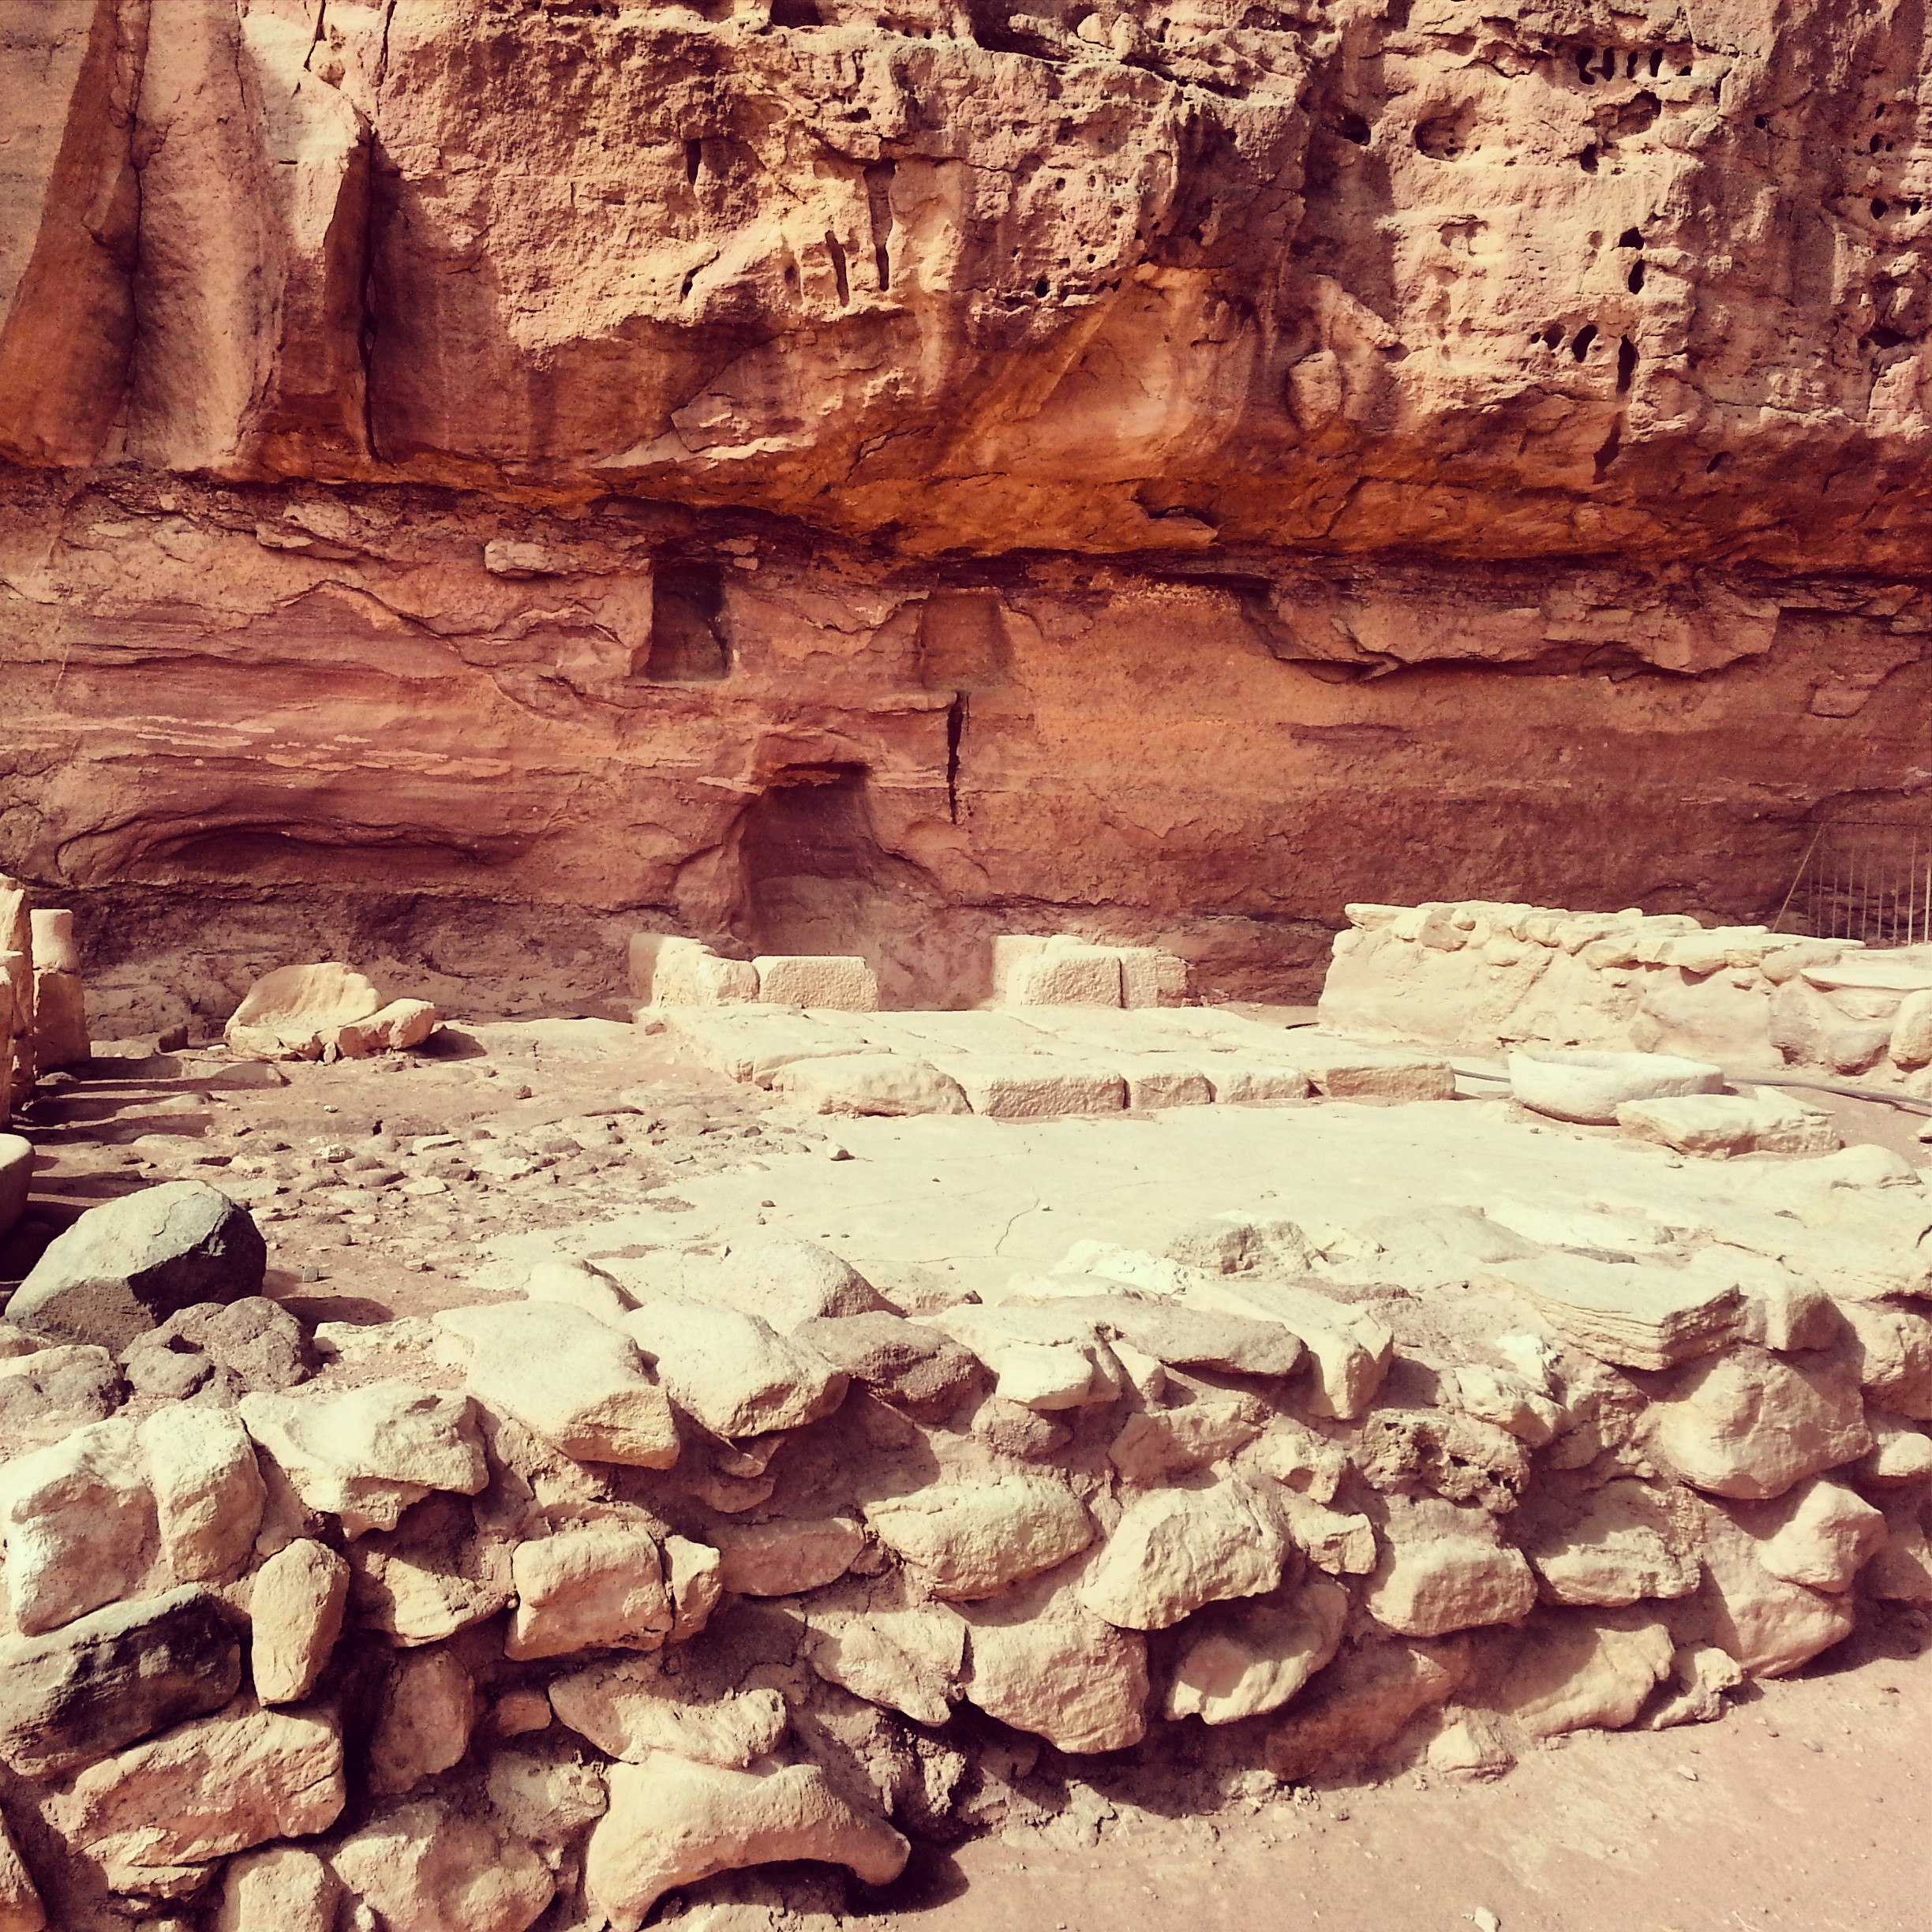 Ancient temple / ritual site in Timna